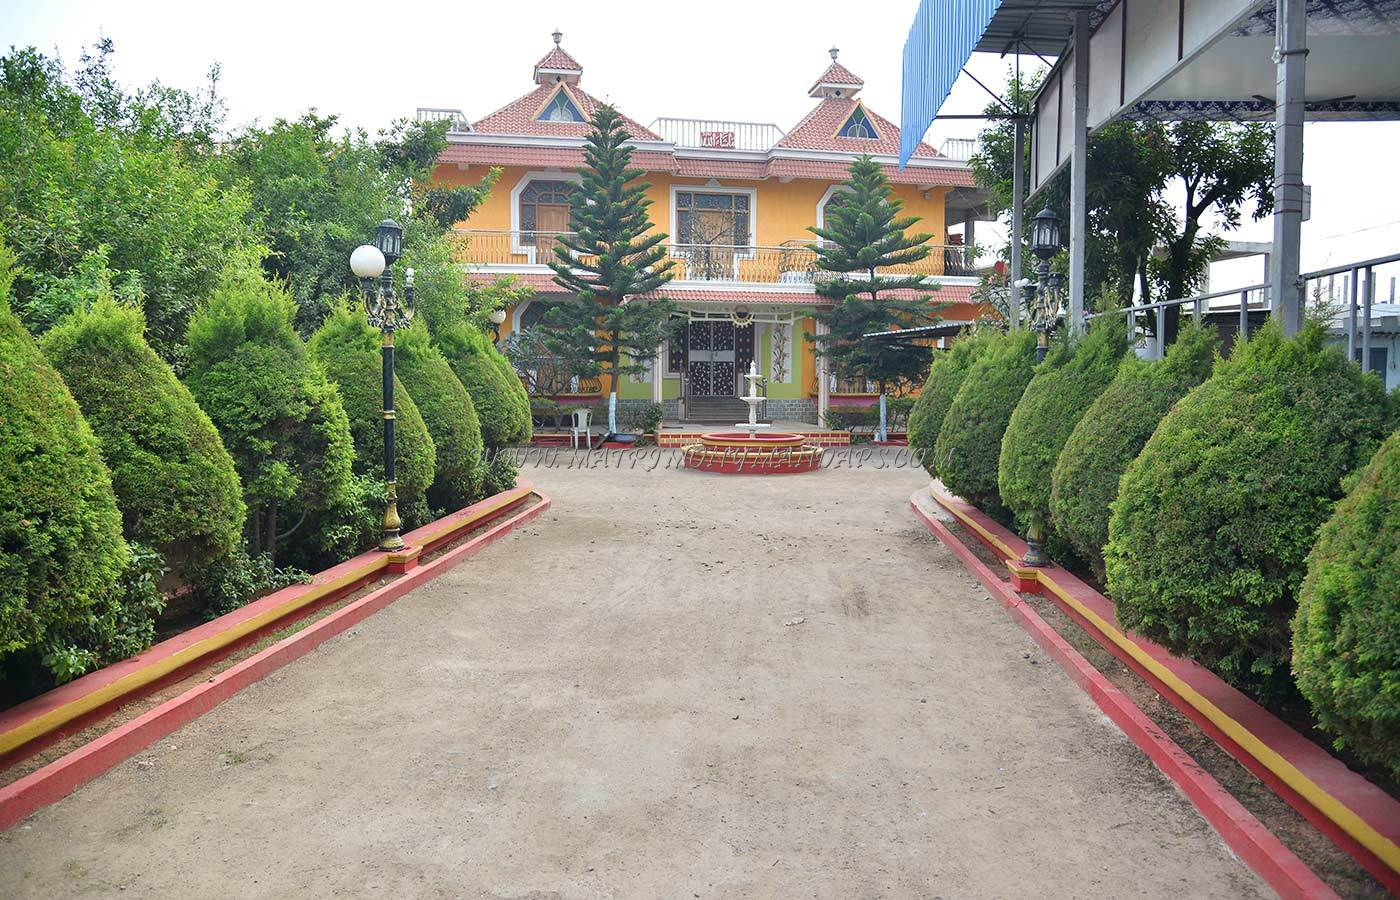 Find the availability of the Mega Garden Function Hall 1 in Balapur, Hyderabad and avail special offers